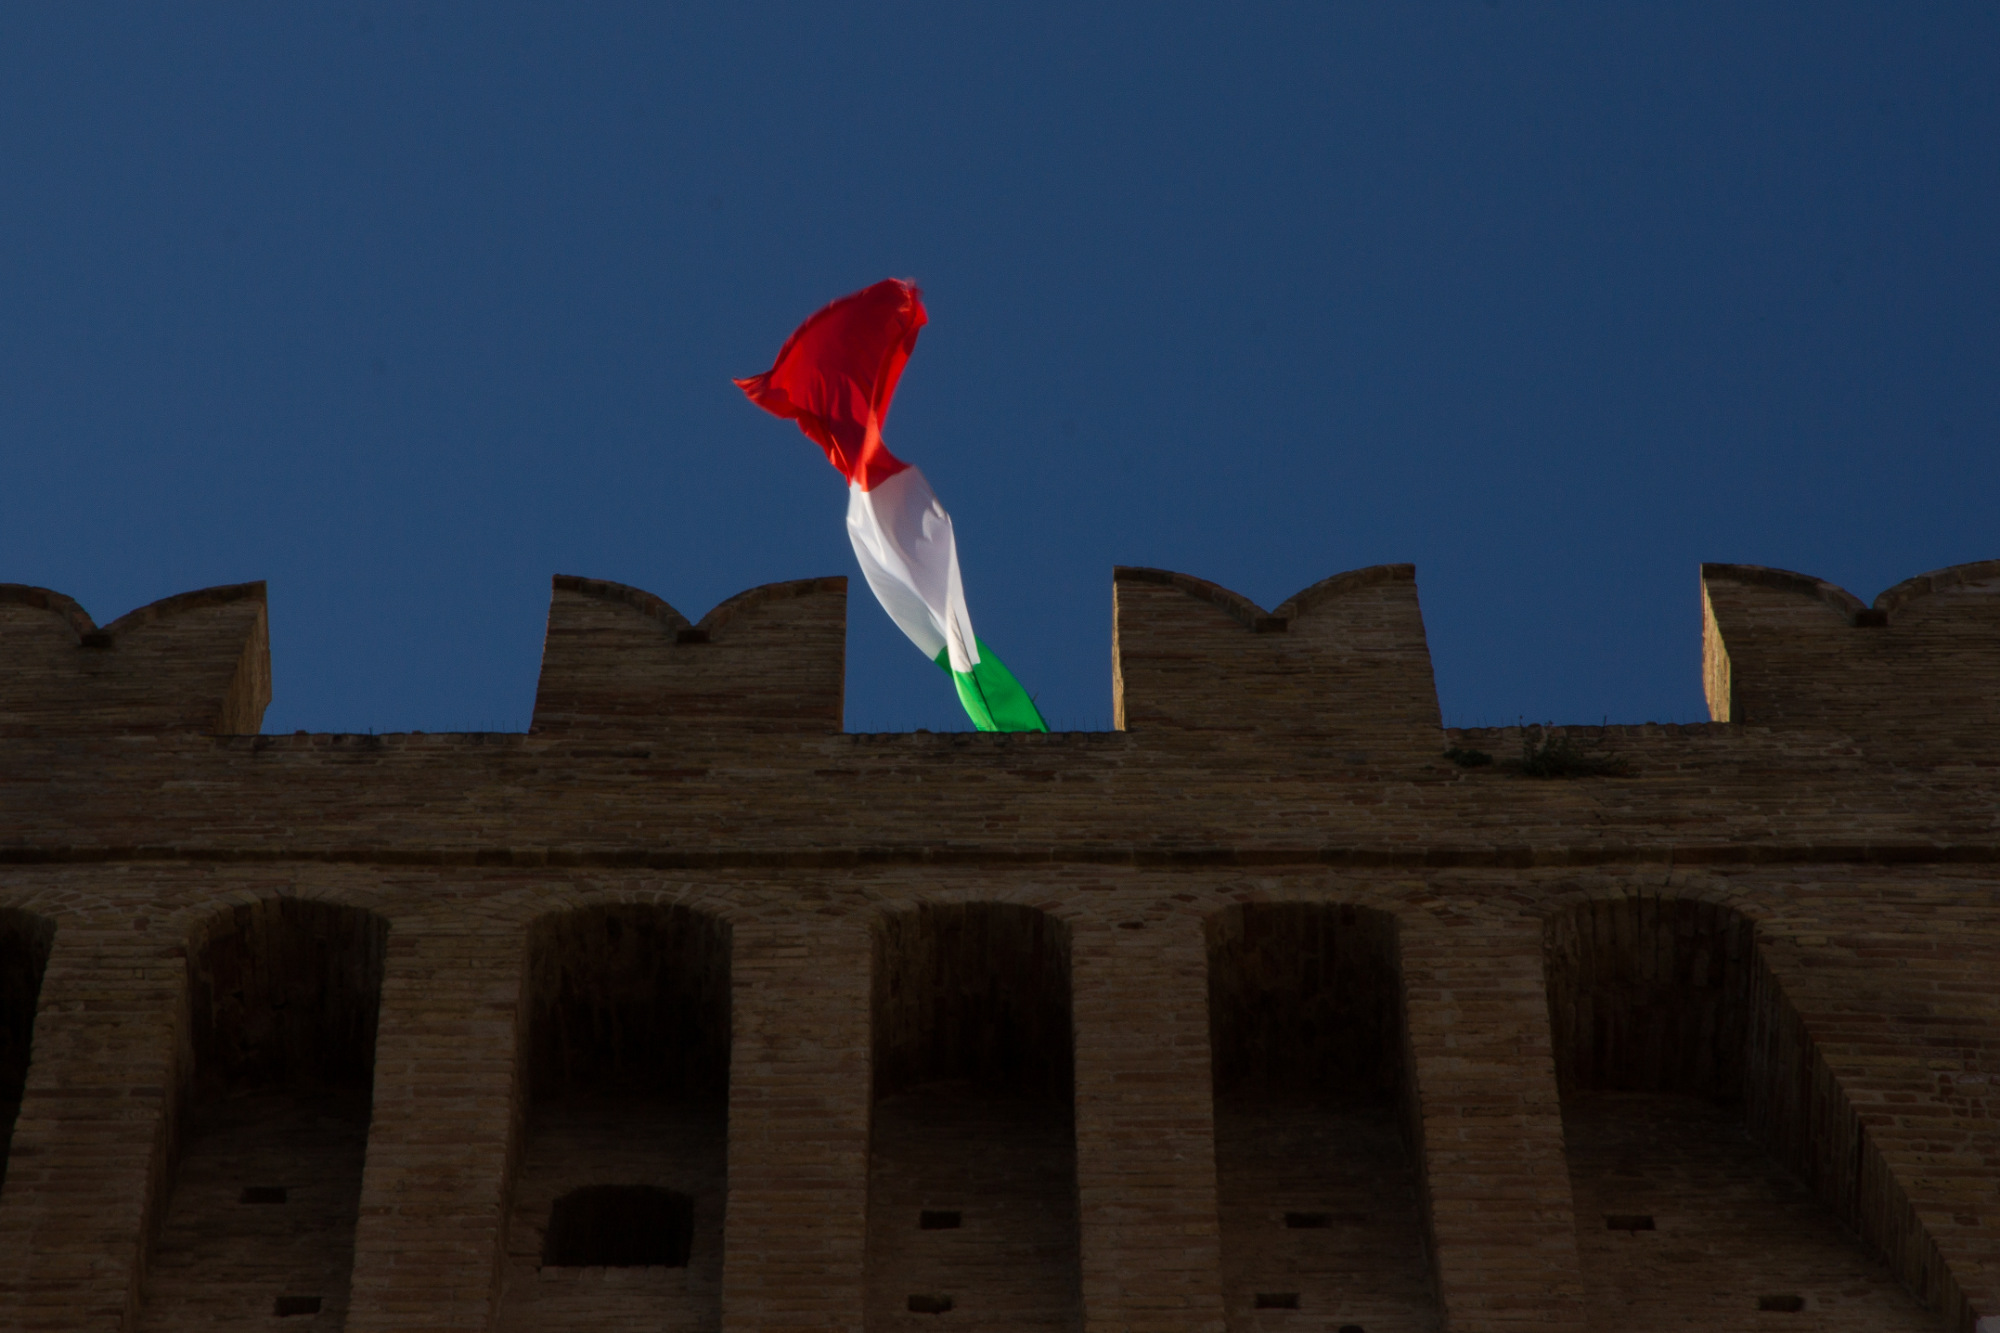 recanati italian flag flies above city tower